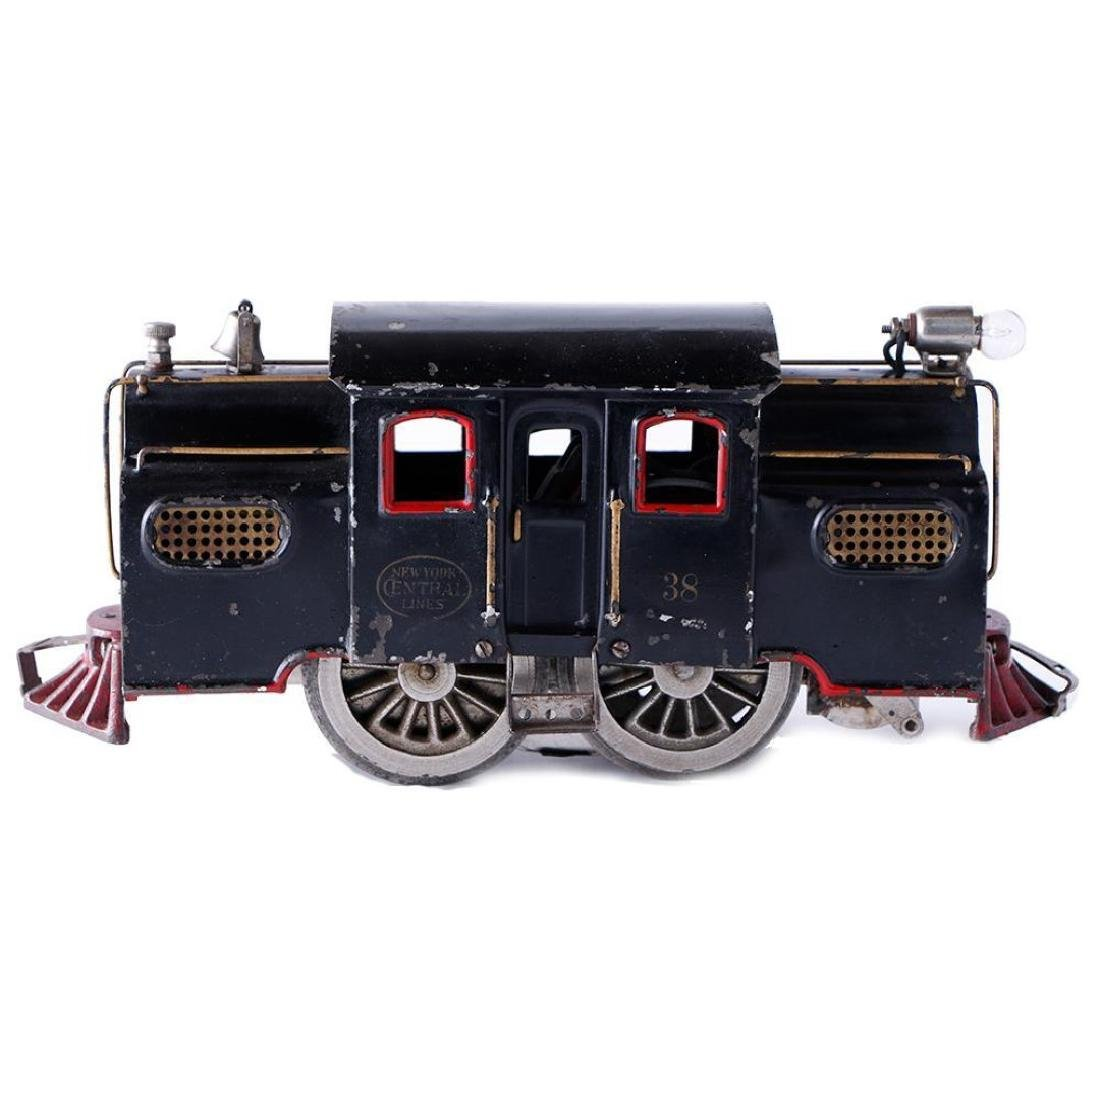 Lionel Standard Gauge Early 38 Locomotive